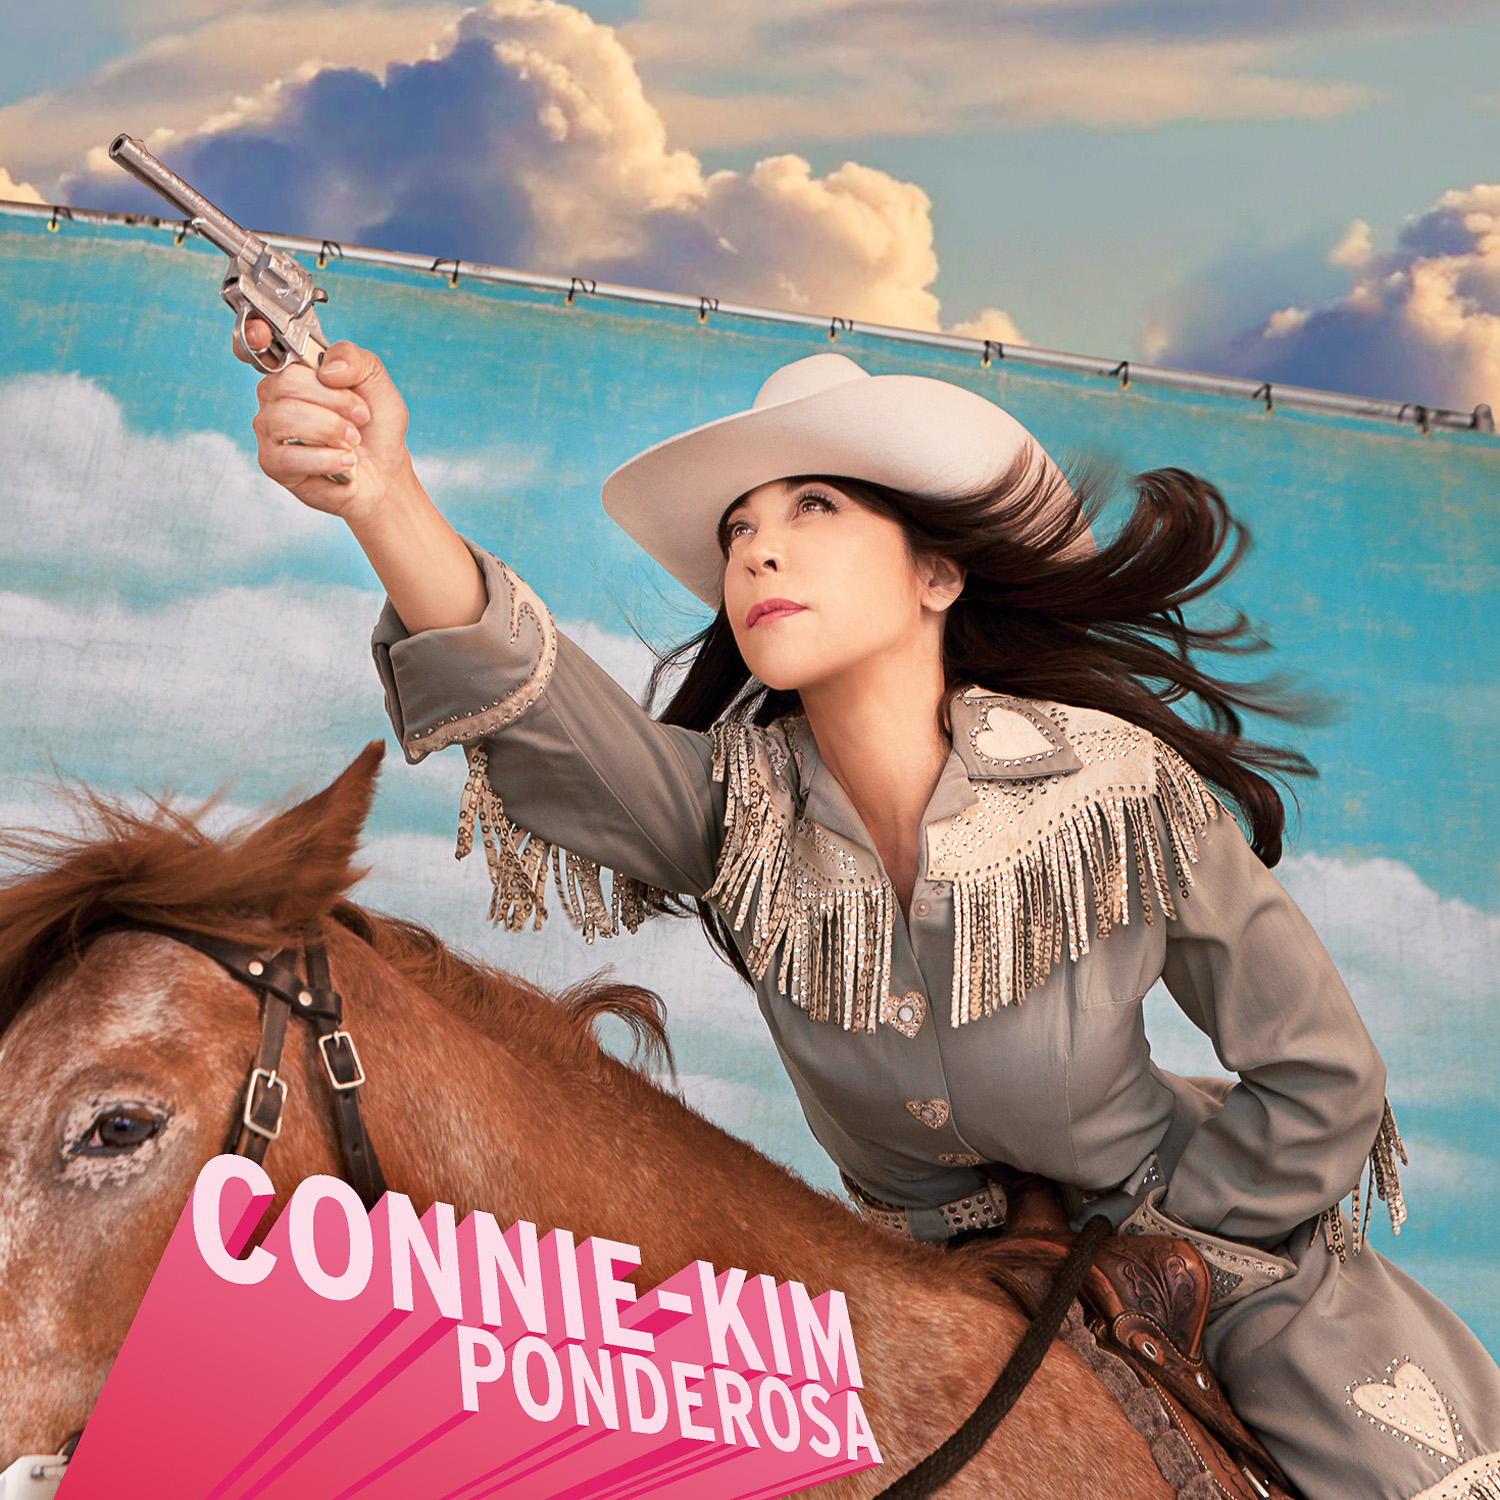 A.V.A Live Radio Interviews Singer Songwriter Connie-Kim